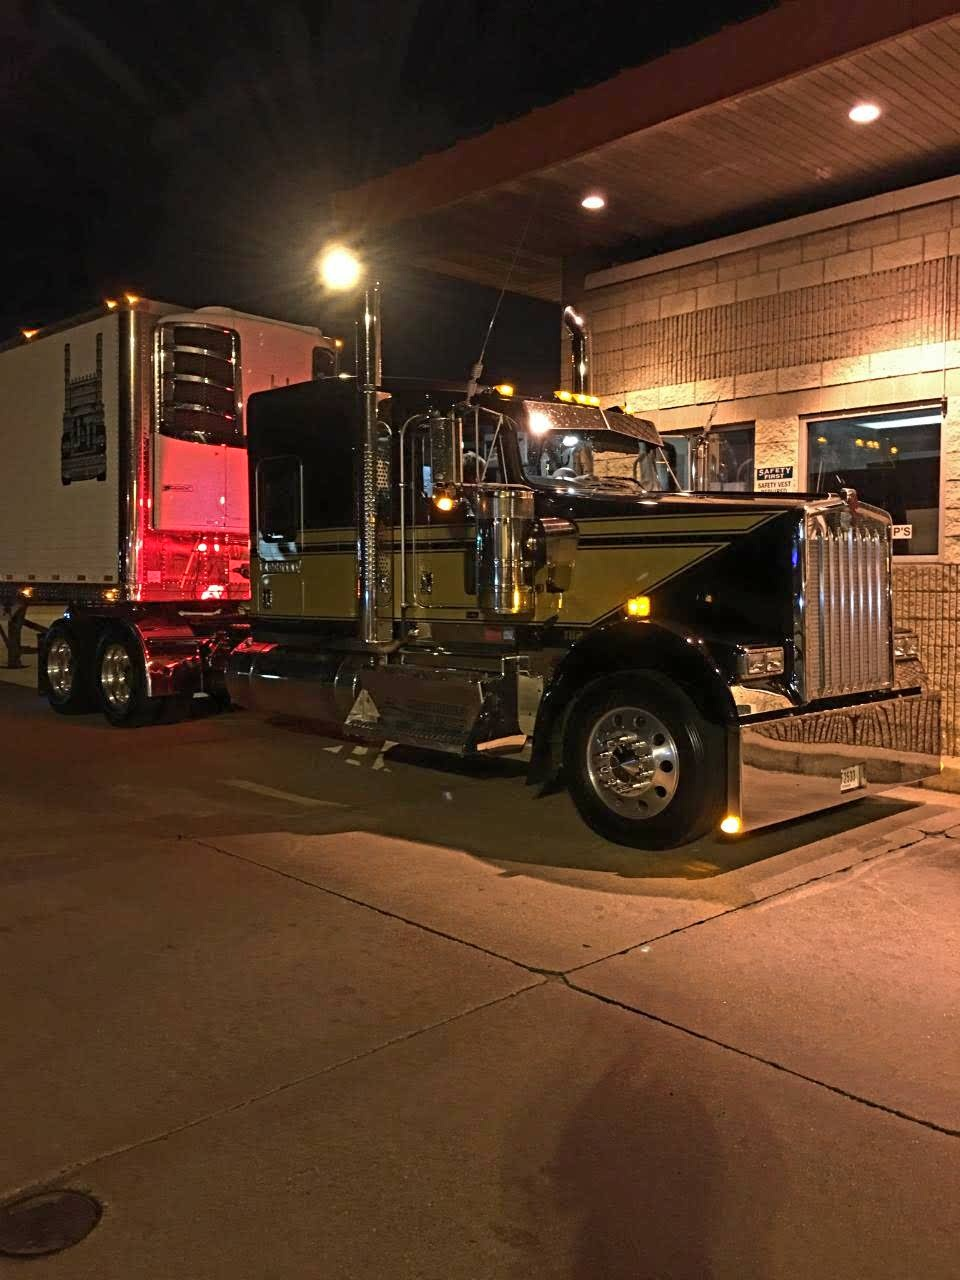 Tab's Big Rig, second picture.